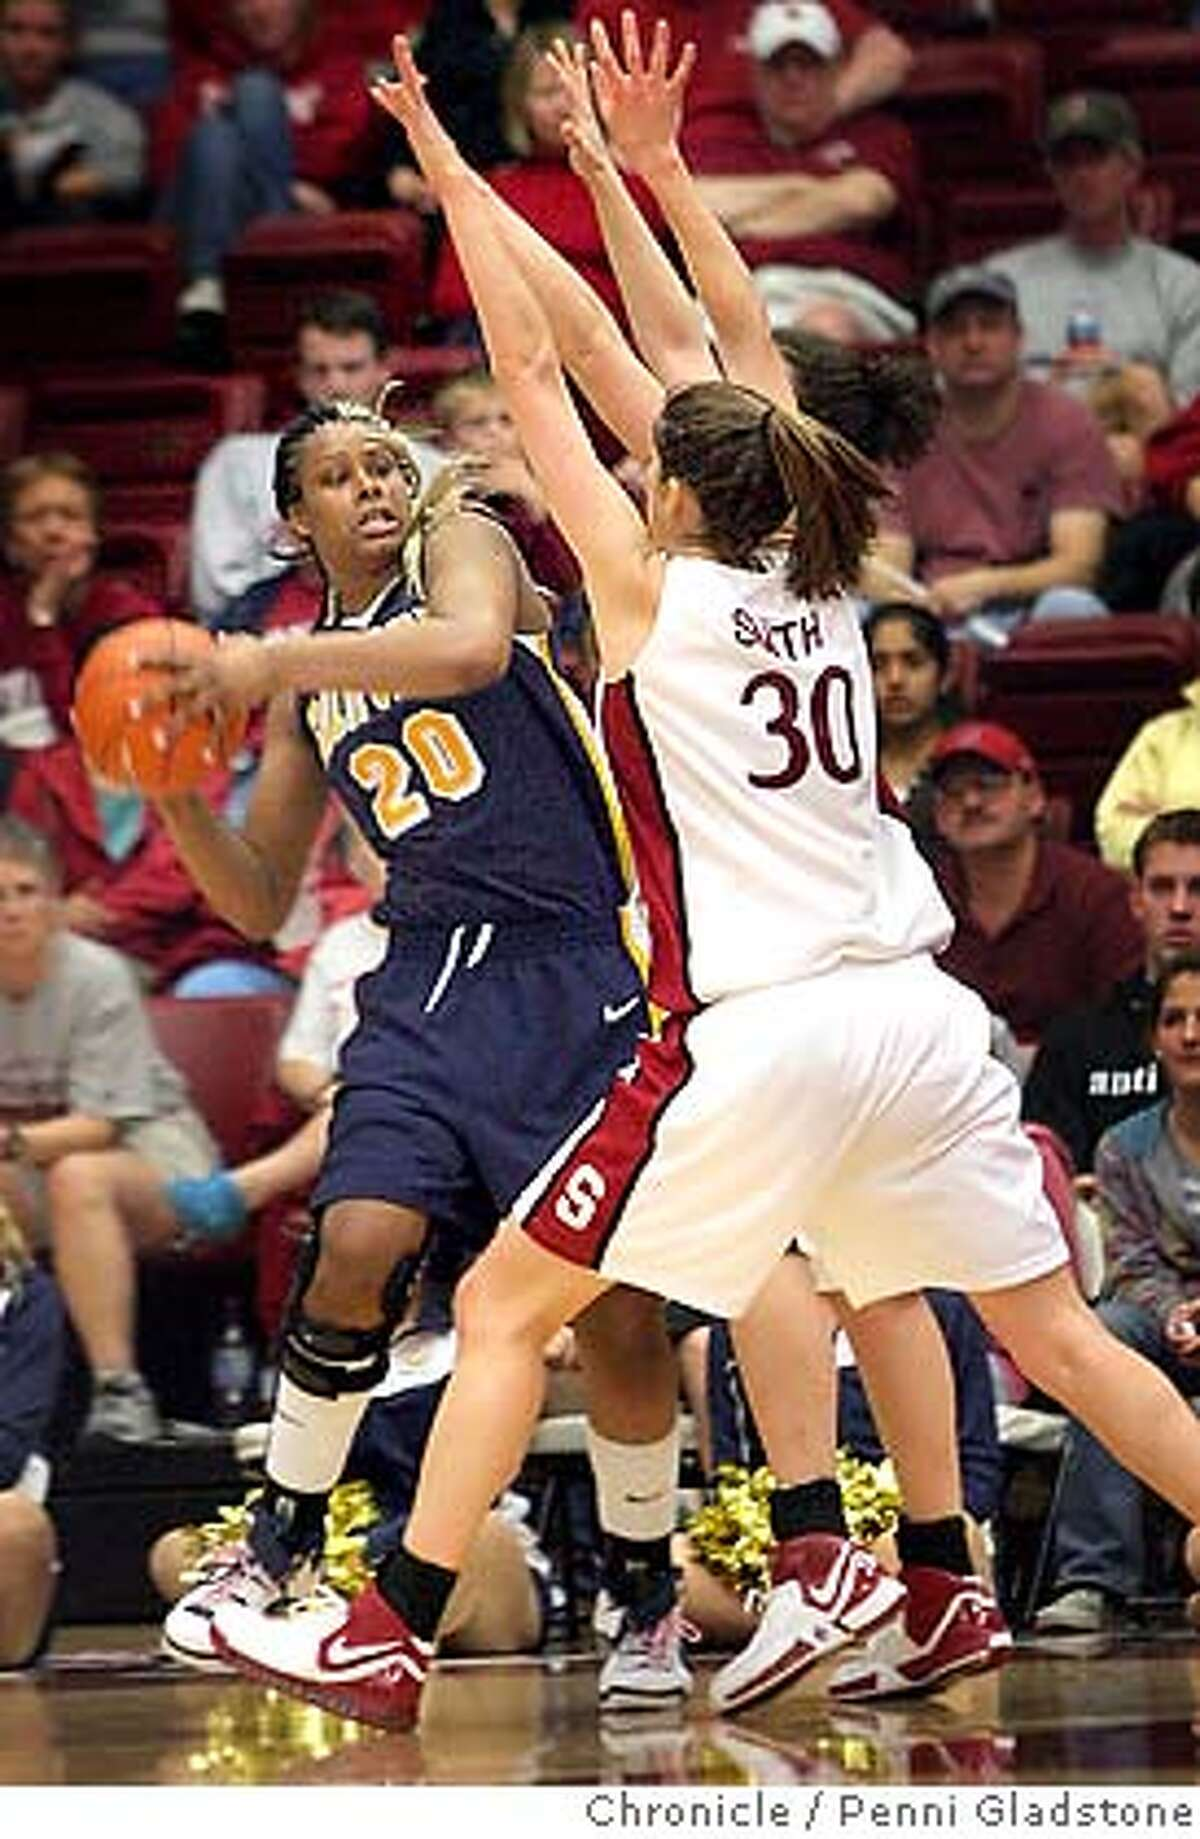 Stanford Cardinal vs California Golden Bears in basketball Bears Devanei Hampton tries to fend off Cardinal's Brooke Smith Event on 2/4/07 in Stanford. penni gladstone / The Chronicle